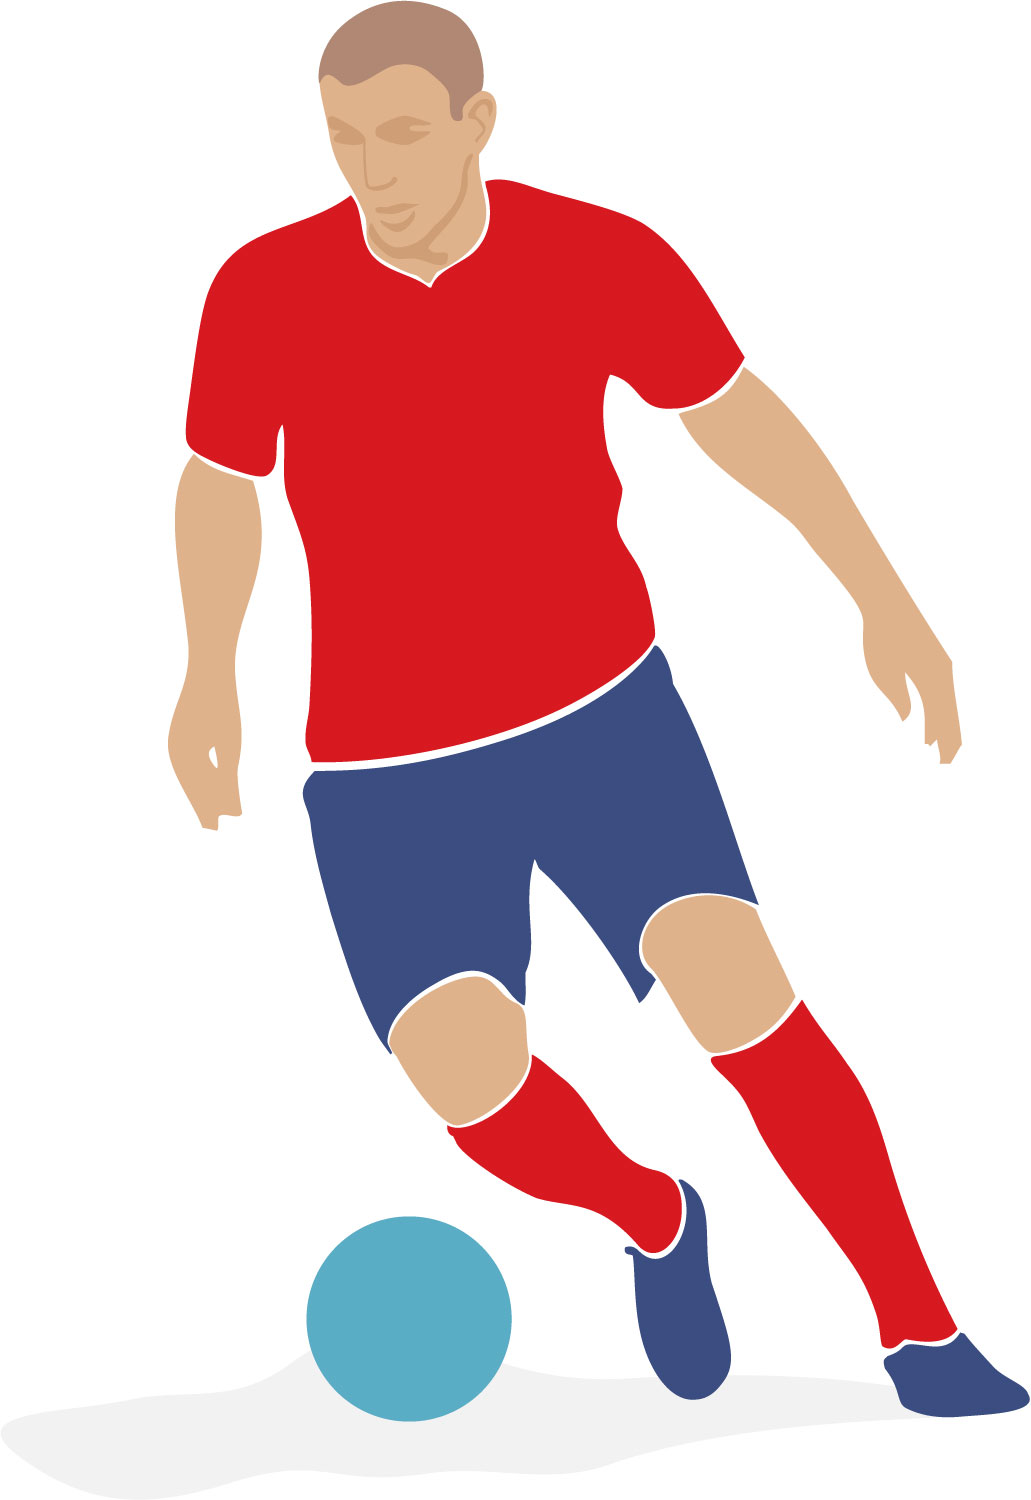 Soccer player pictures clipart image freeuse stock Free Soccer Player Cliparts, Download Free Clip Art, Free Clip Art ... image freeuse stock